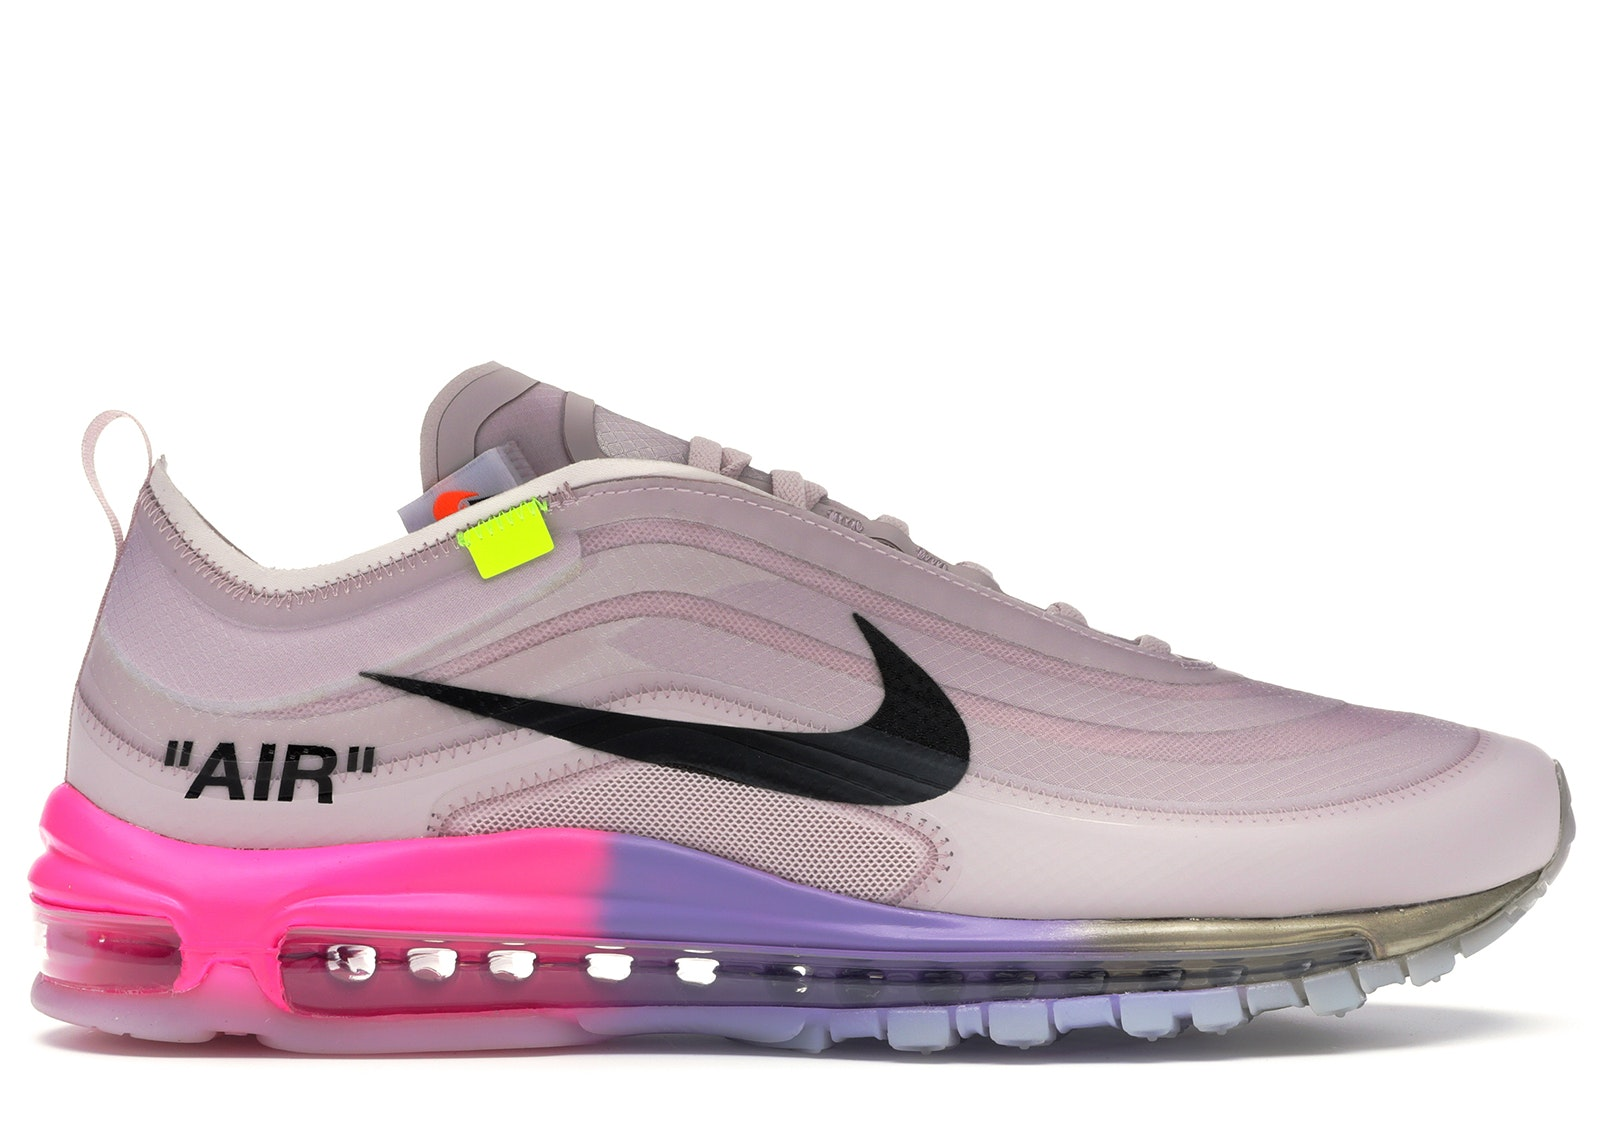 hypeanalyzer air max 97 off white elemental rose serena queen rh hypeanalyzer com